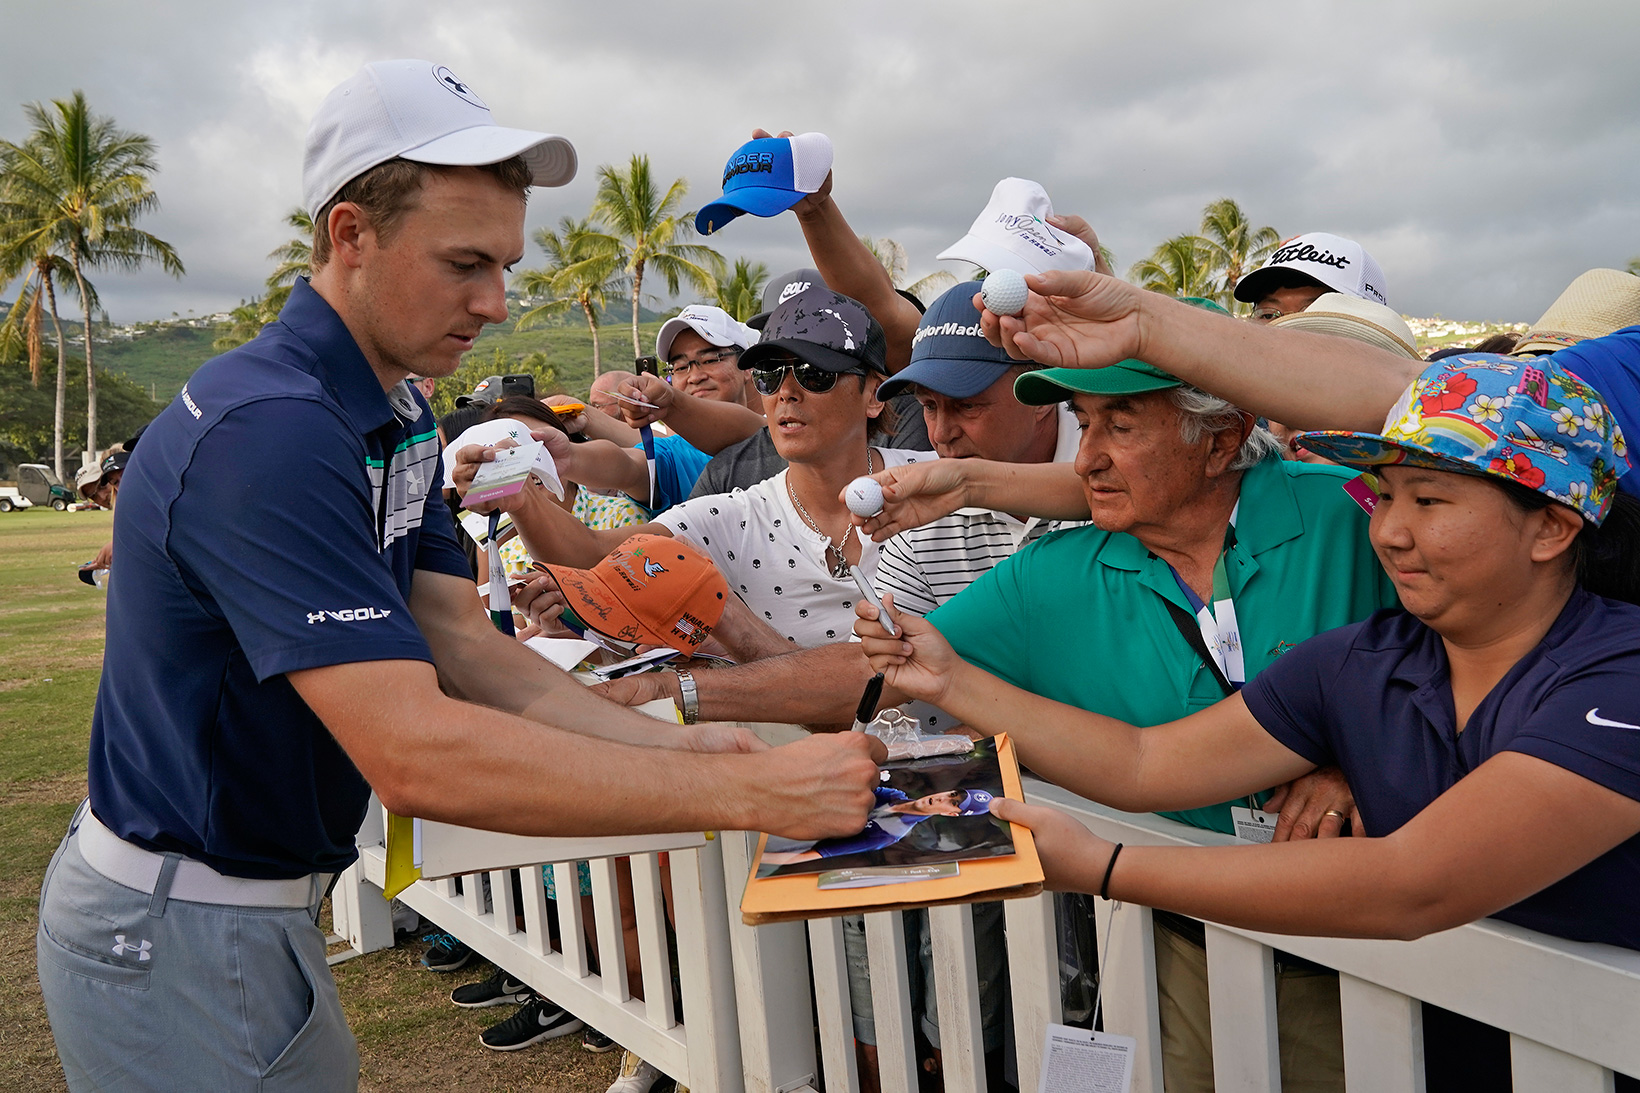 2018 Sony Open: Round 3 - Signing Autographs During the Third Round